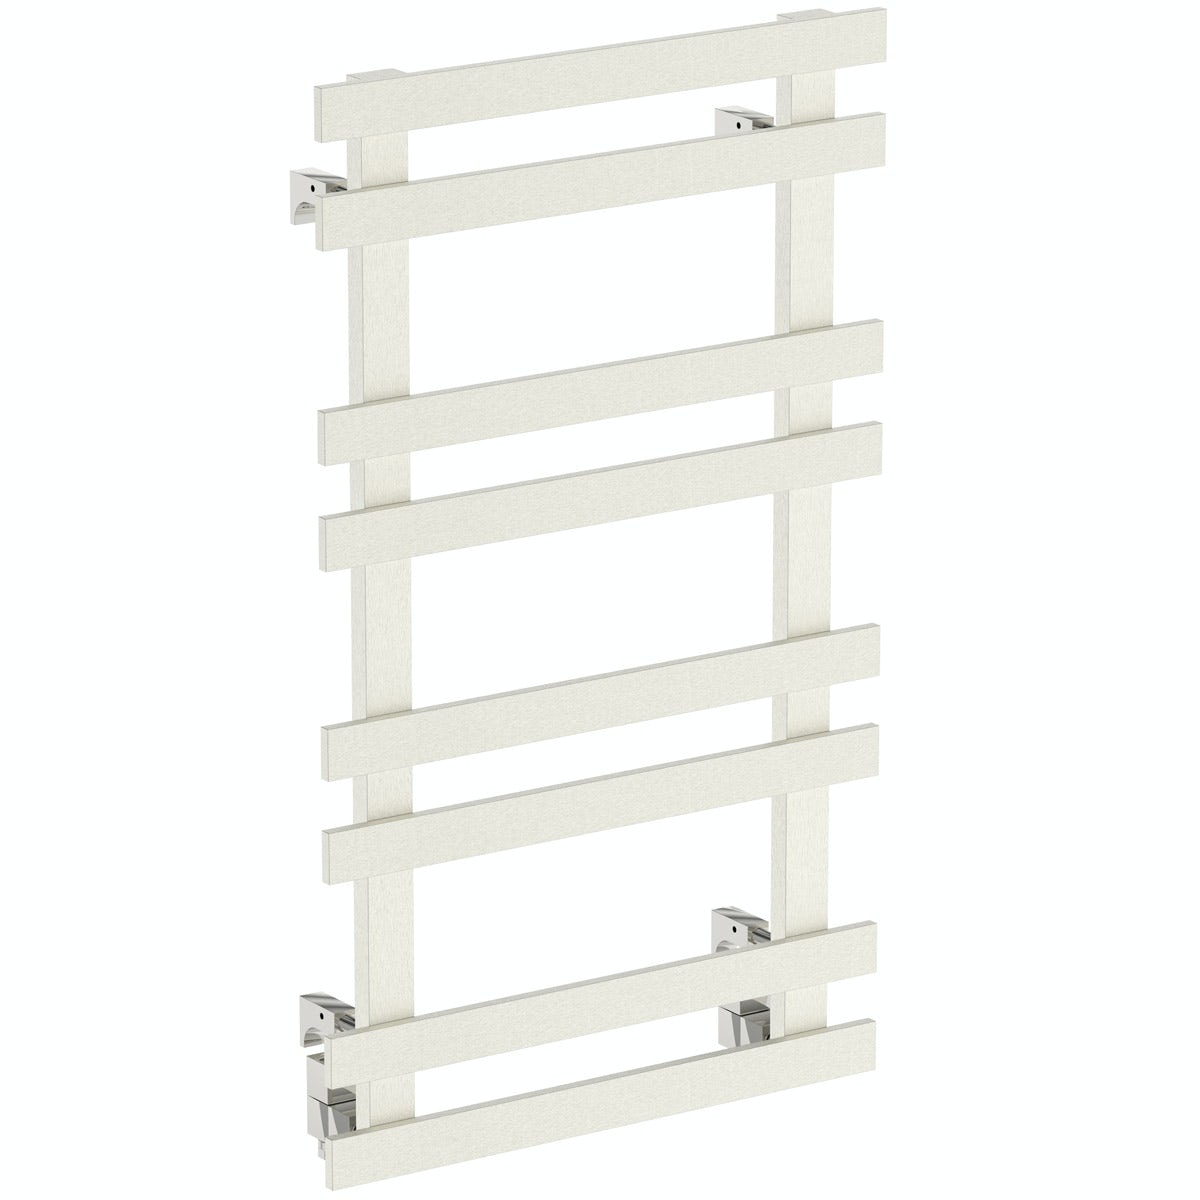 Mode Daisy 8 bar heated towel rail 840 x 500